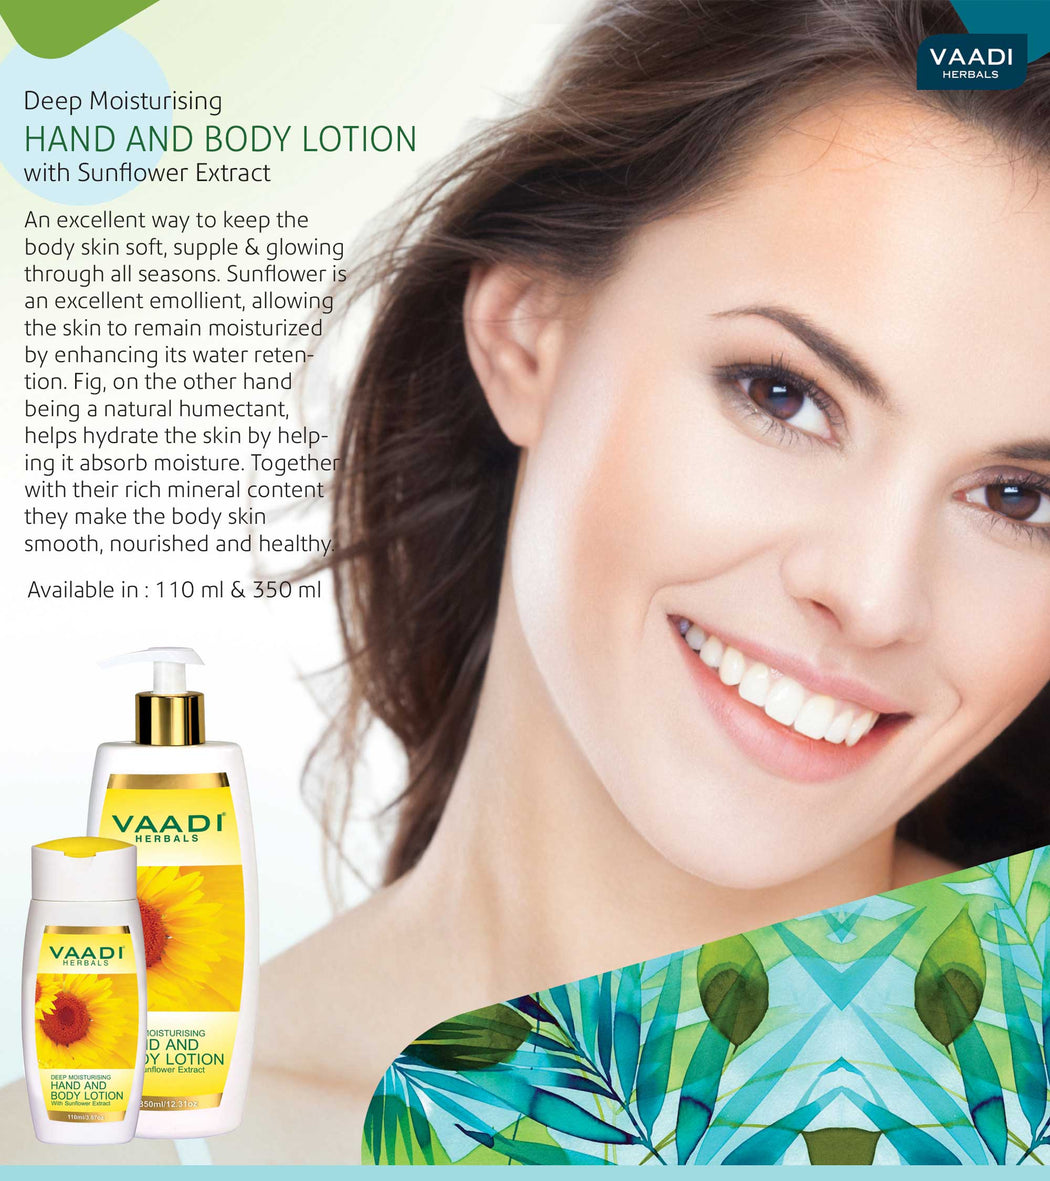 Organic Hand & Body Lotion with Sunflower Extract (110 ml/ 4 fl oz)